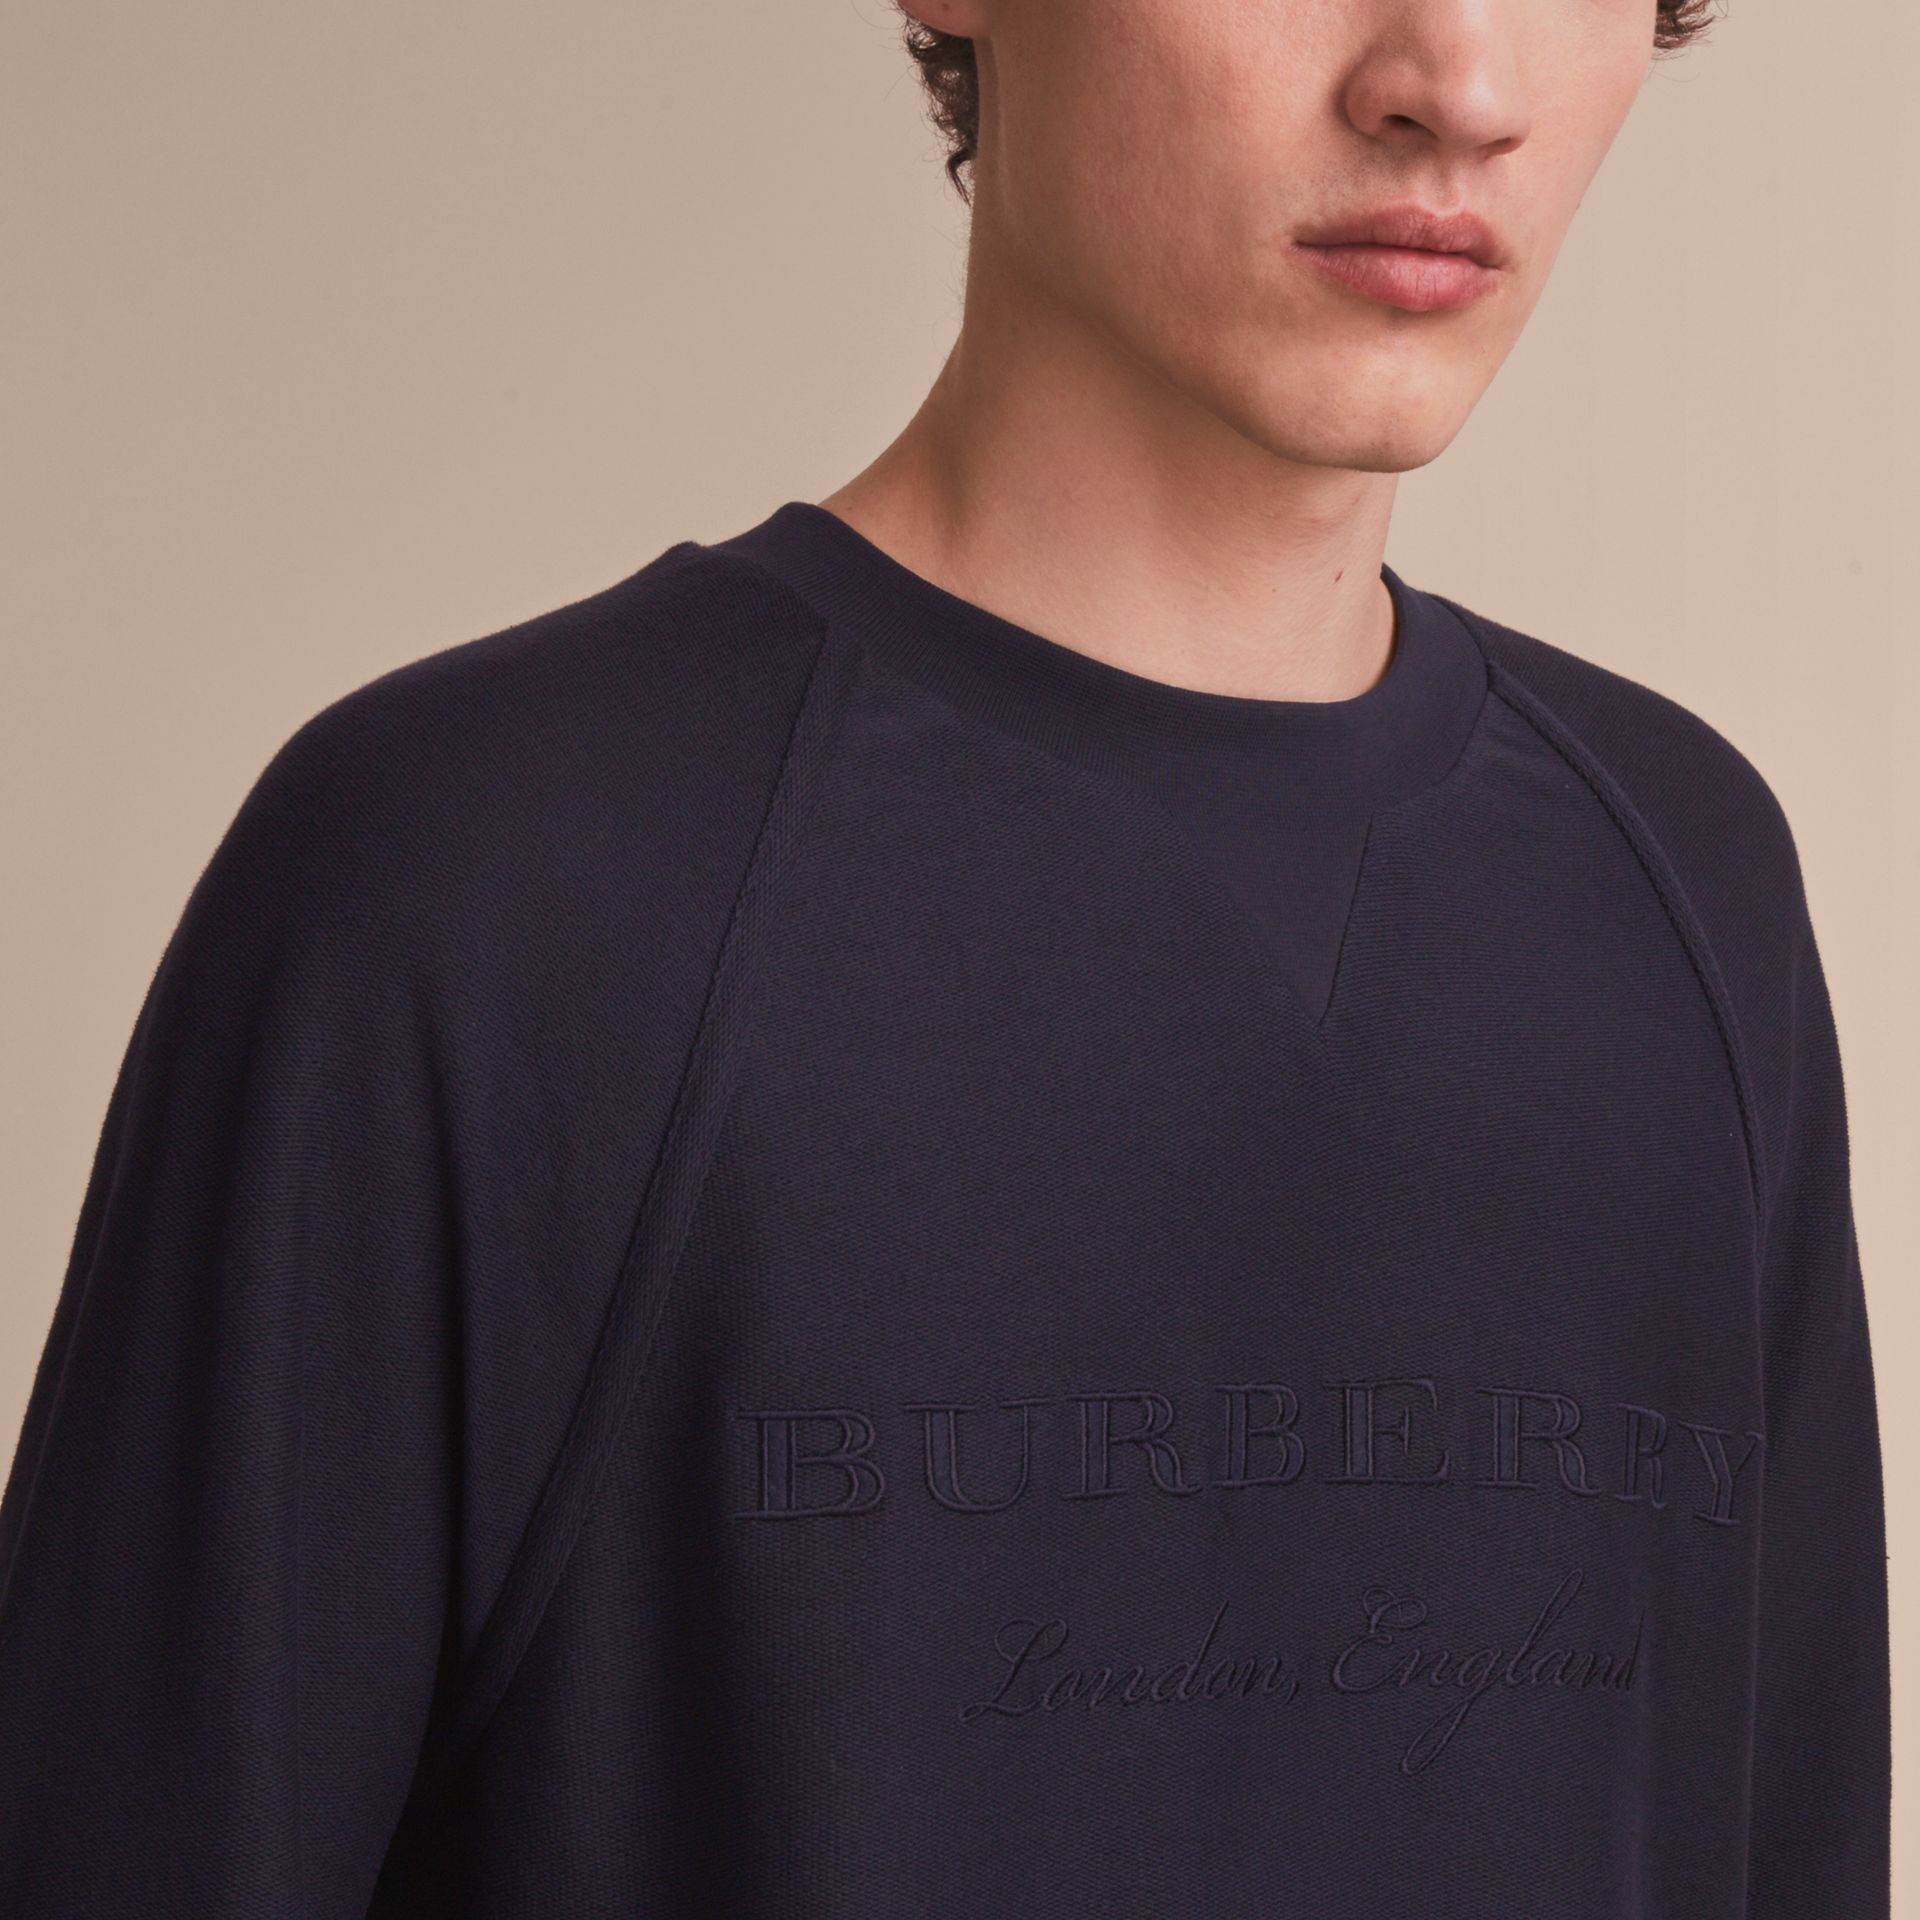 Embroidered Motif Cotton-blend Jersey Sweatshirt in Navy - Men | Burberry - gallery image 5